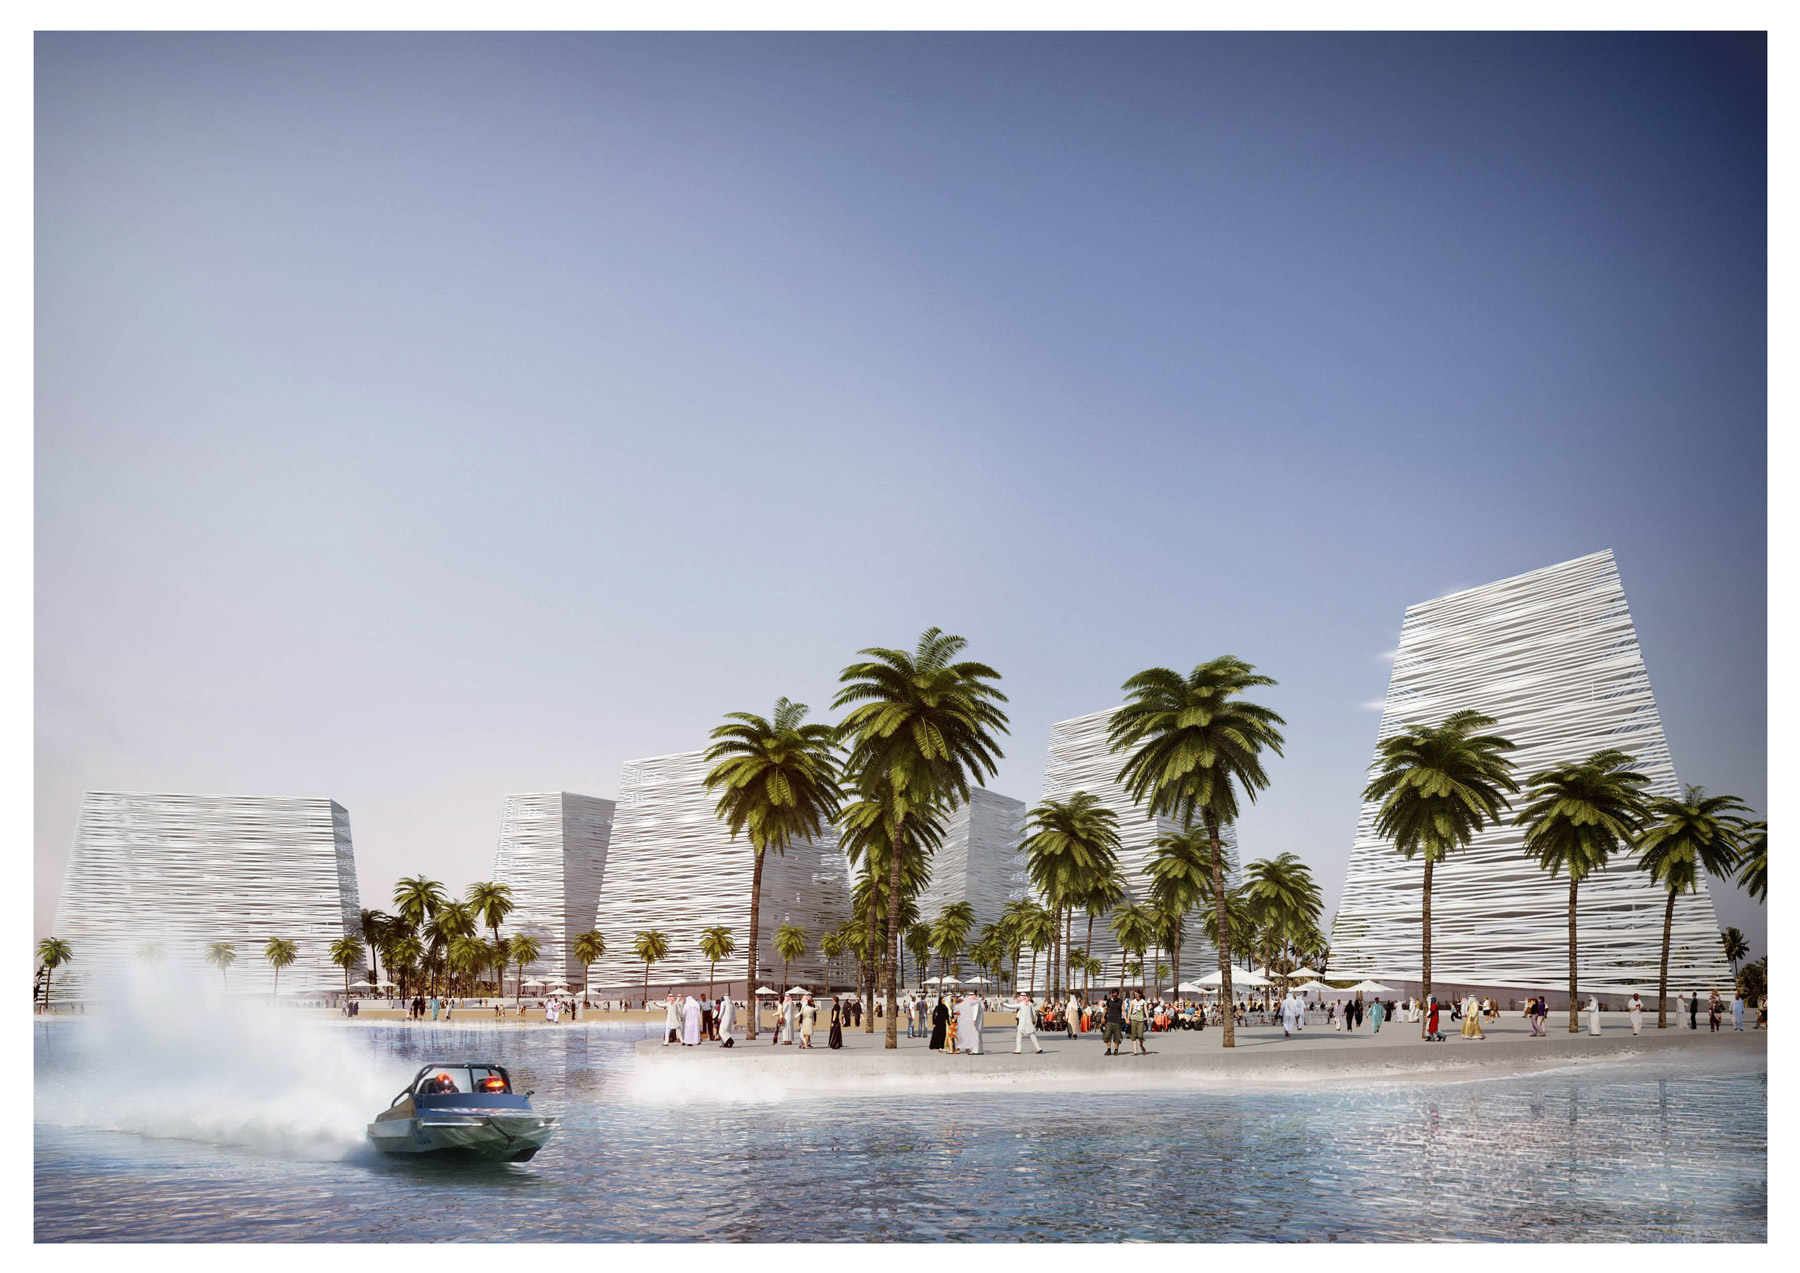 161_Lusail_S1S2_Slide_15